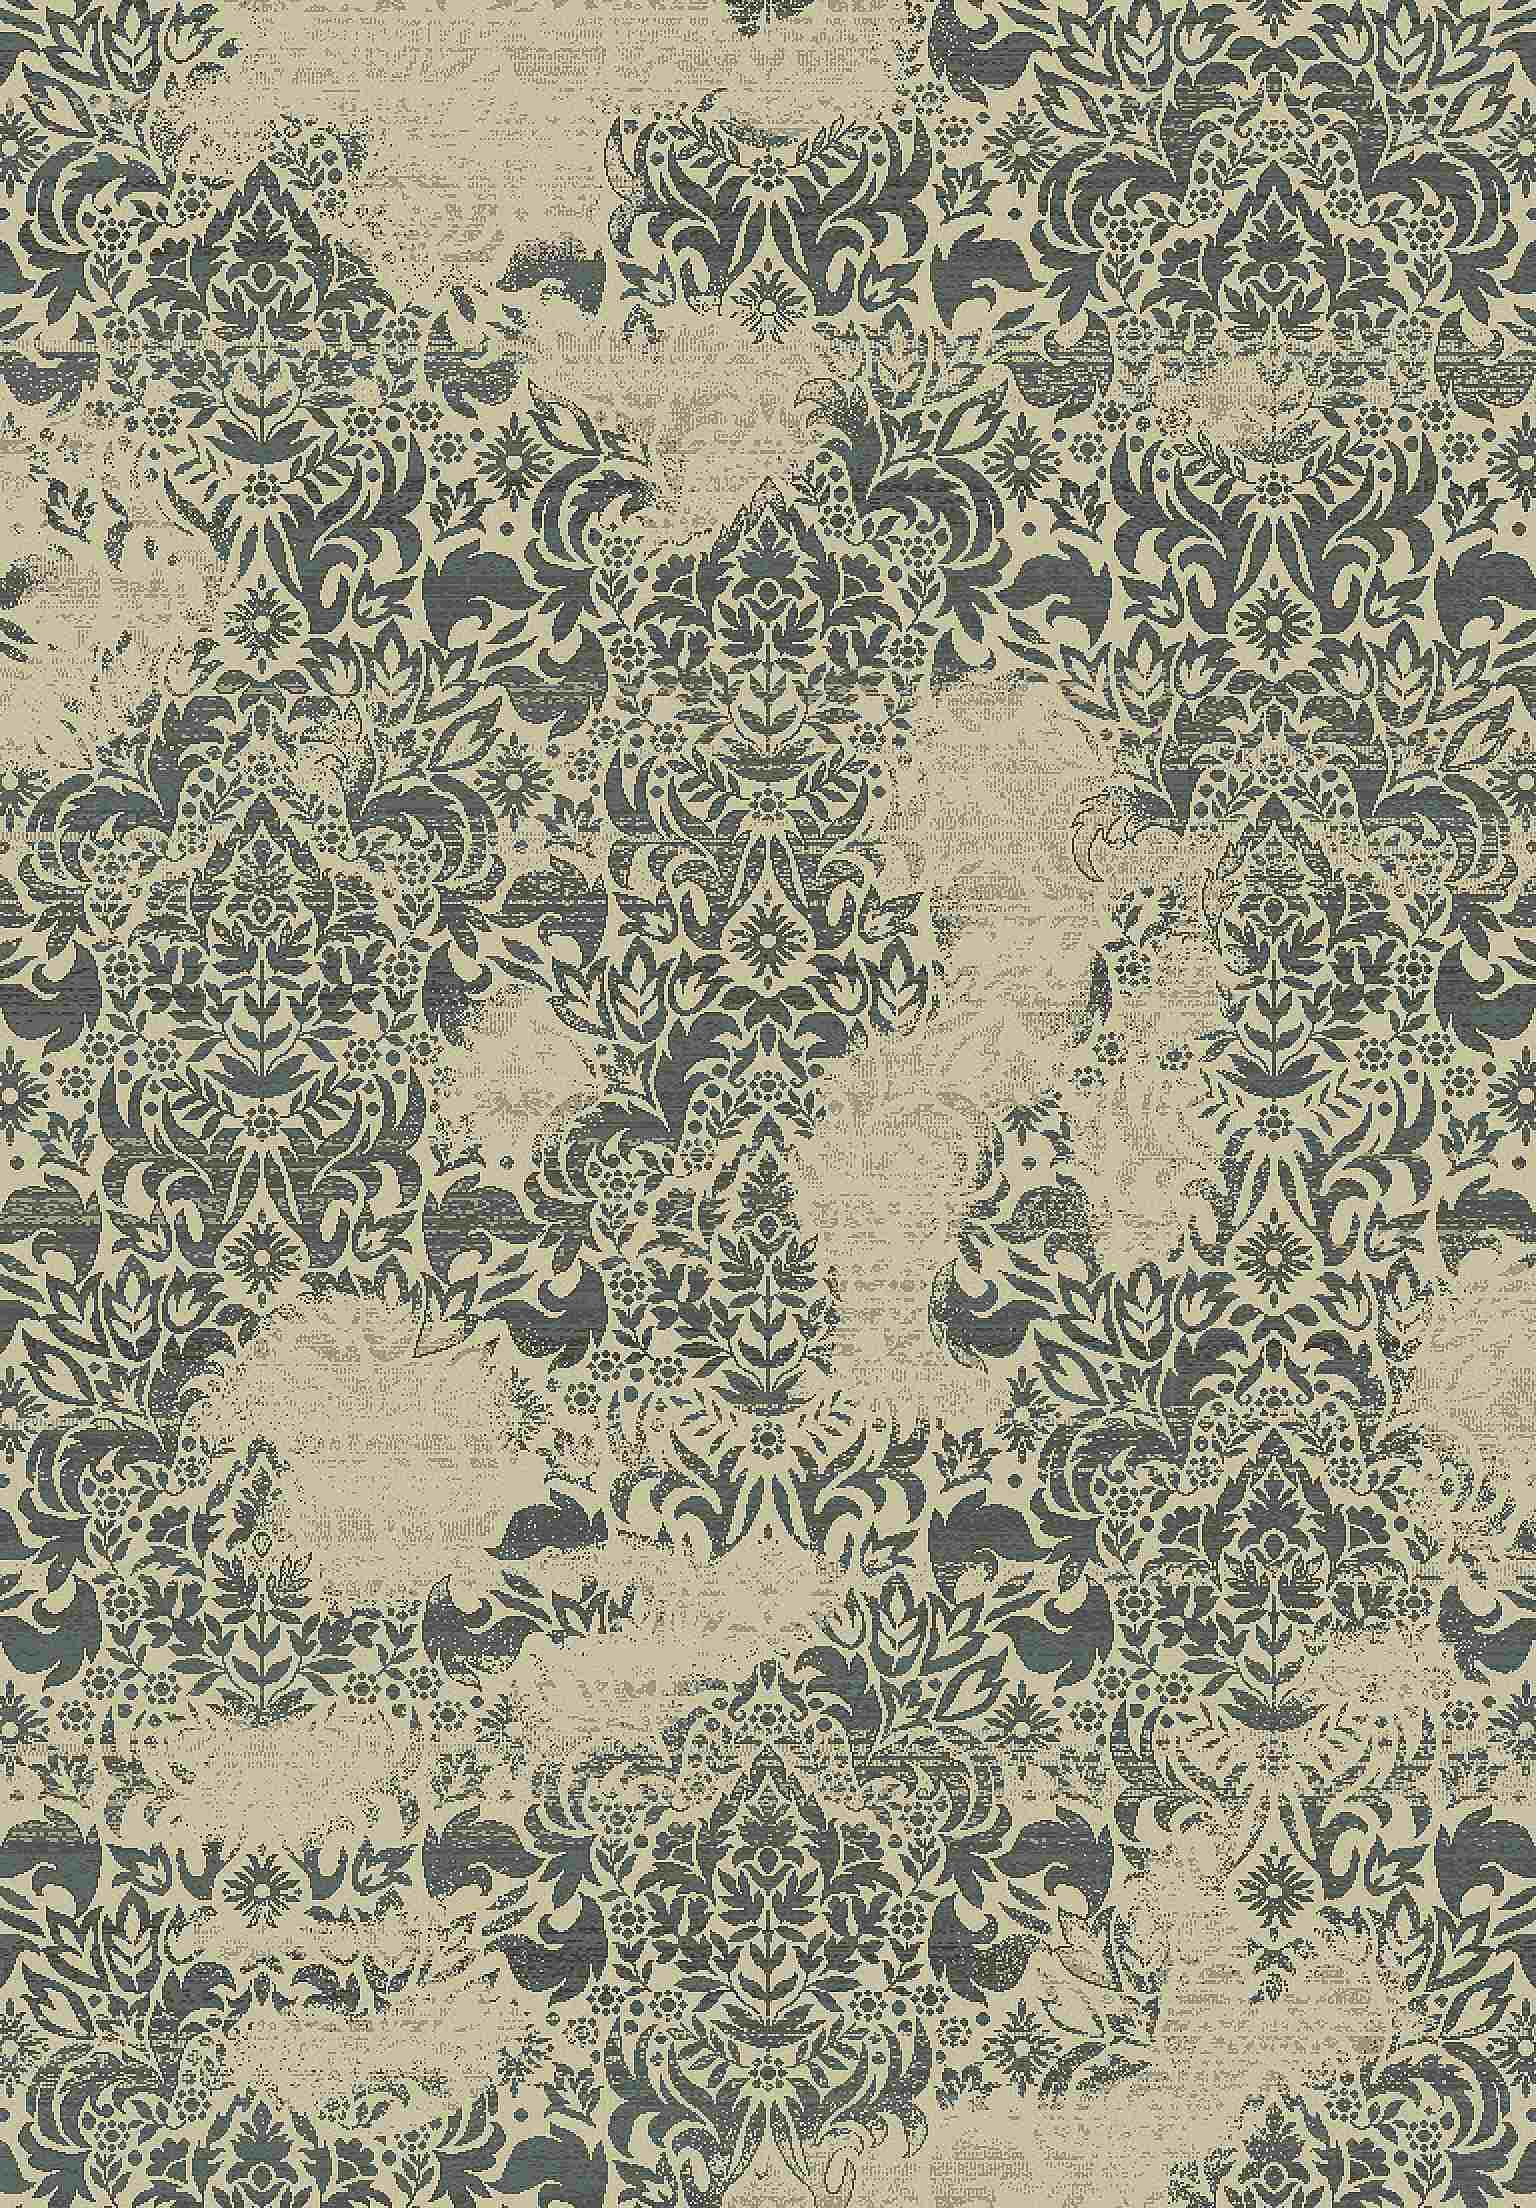 Dynamic Rugs Treasure Ii Distressed Beige 4302 Area Rug